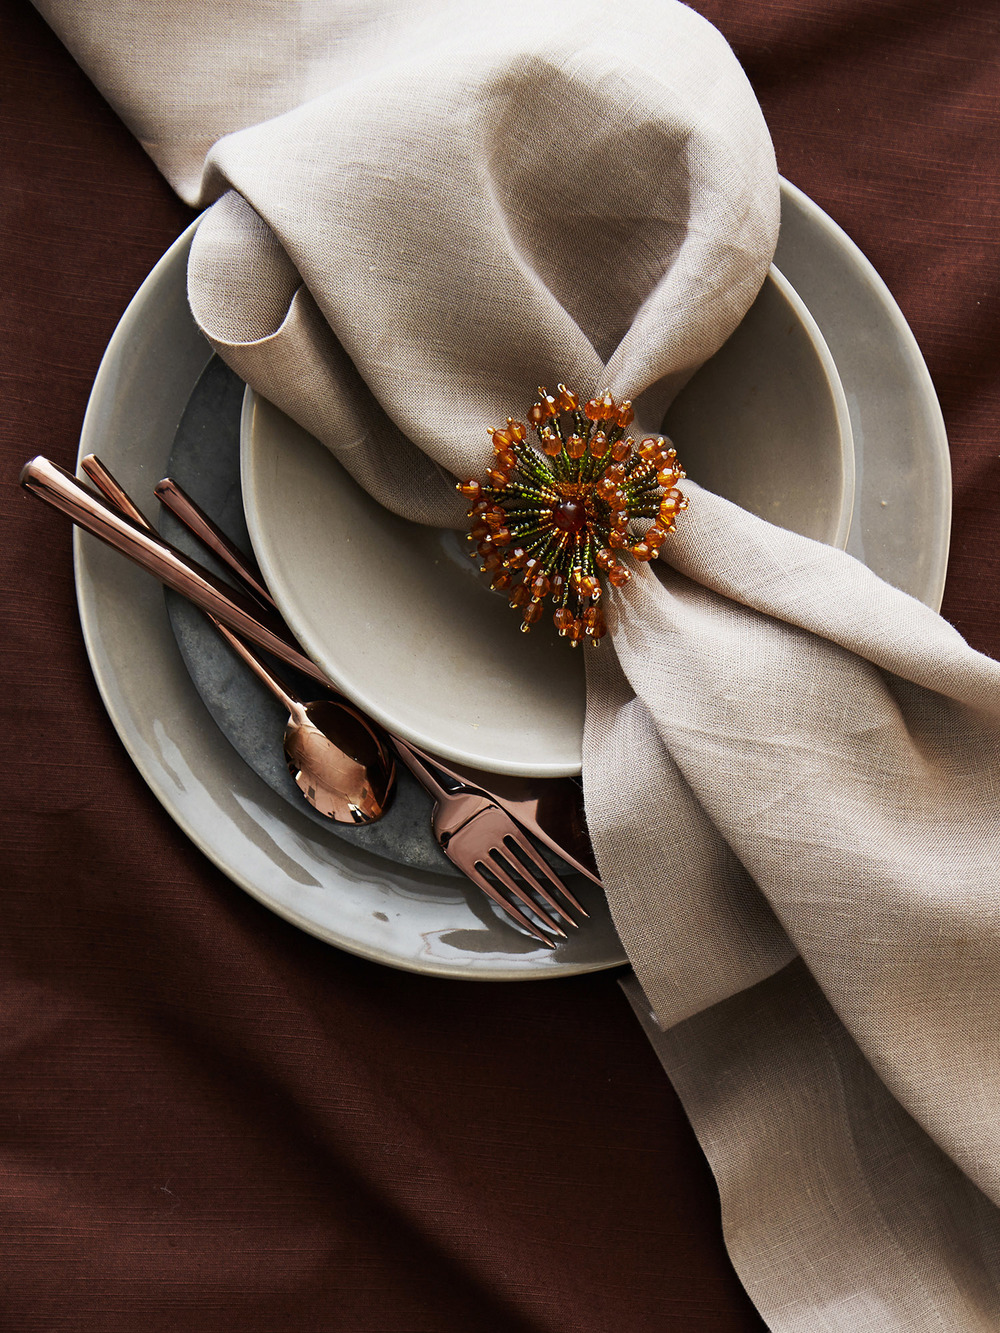 Rustic_Fall_Table_HOME_1074003637_EDITORIAL_188.jpg